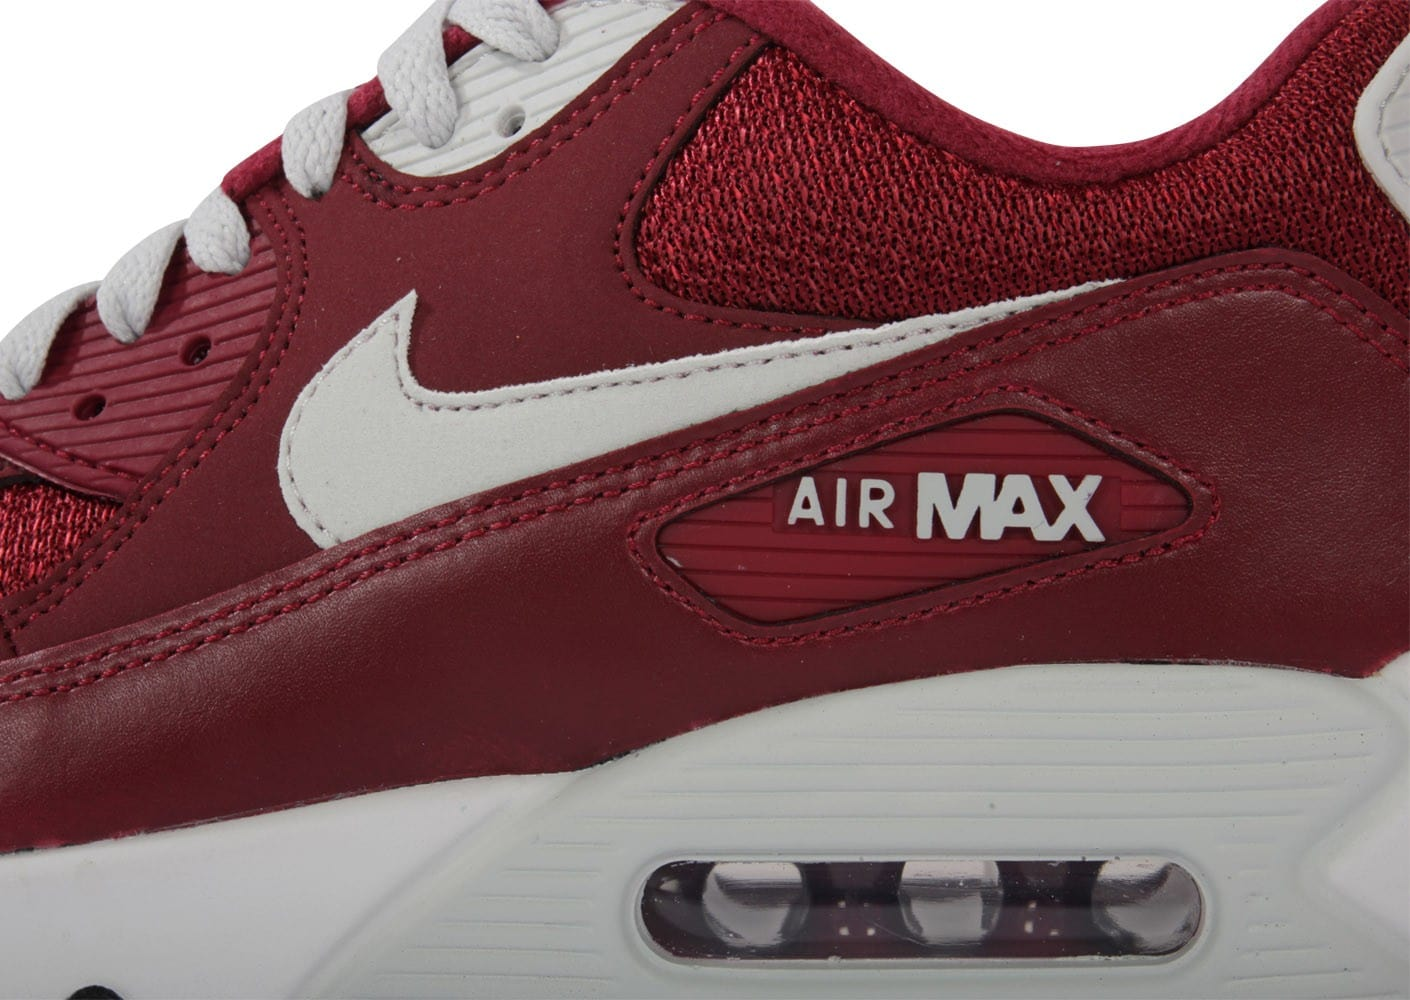 super populaire 11ee9 1fb24 Nike Air Max 90 Essential Bordeaux - Chaussures Baskets ...